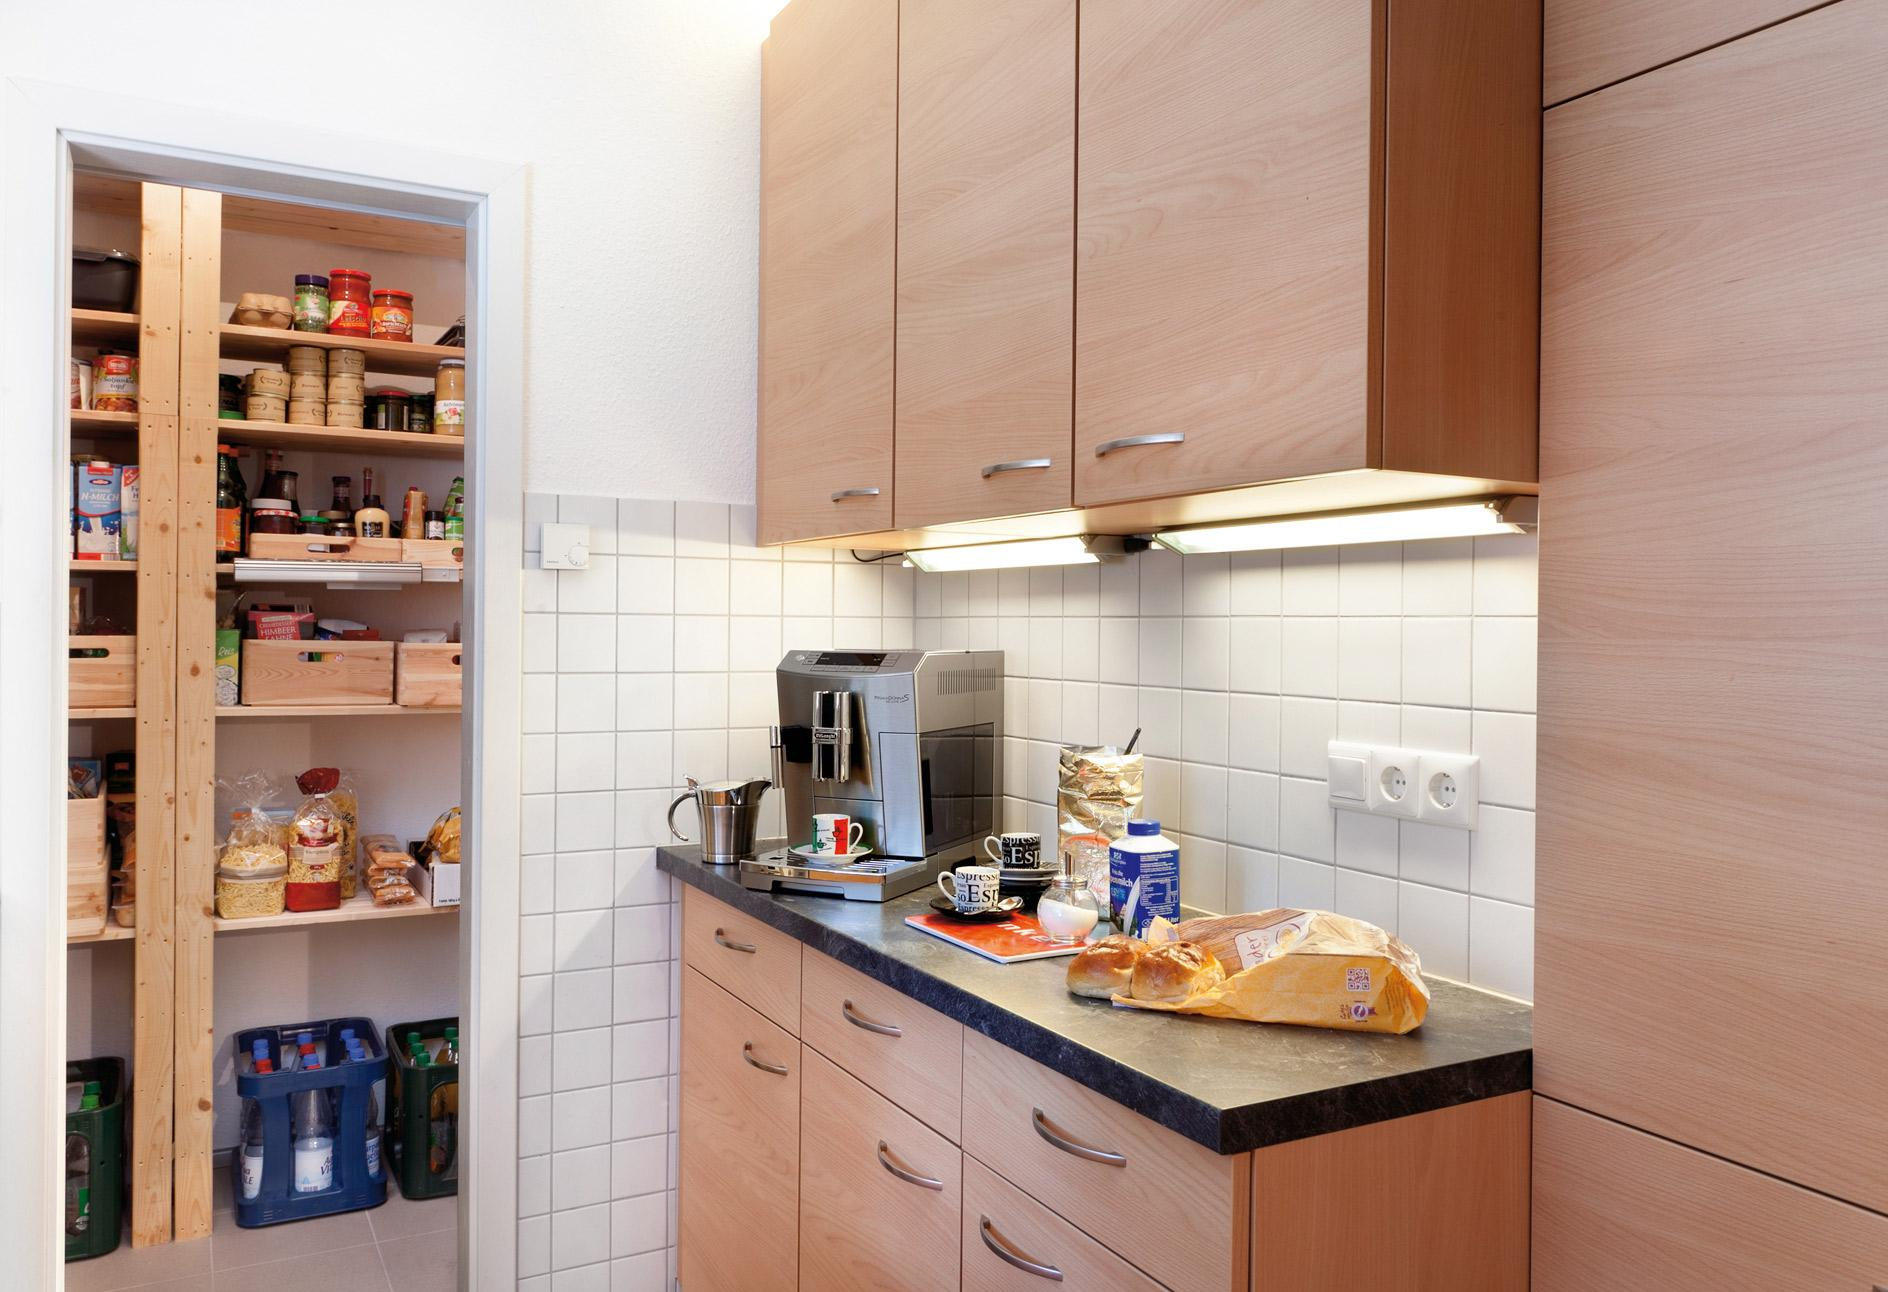 Kitchenette with wooden fronts and pantry